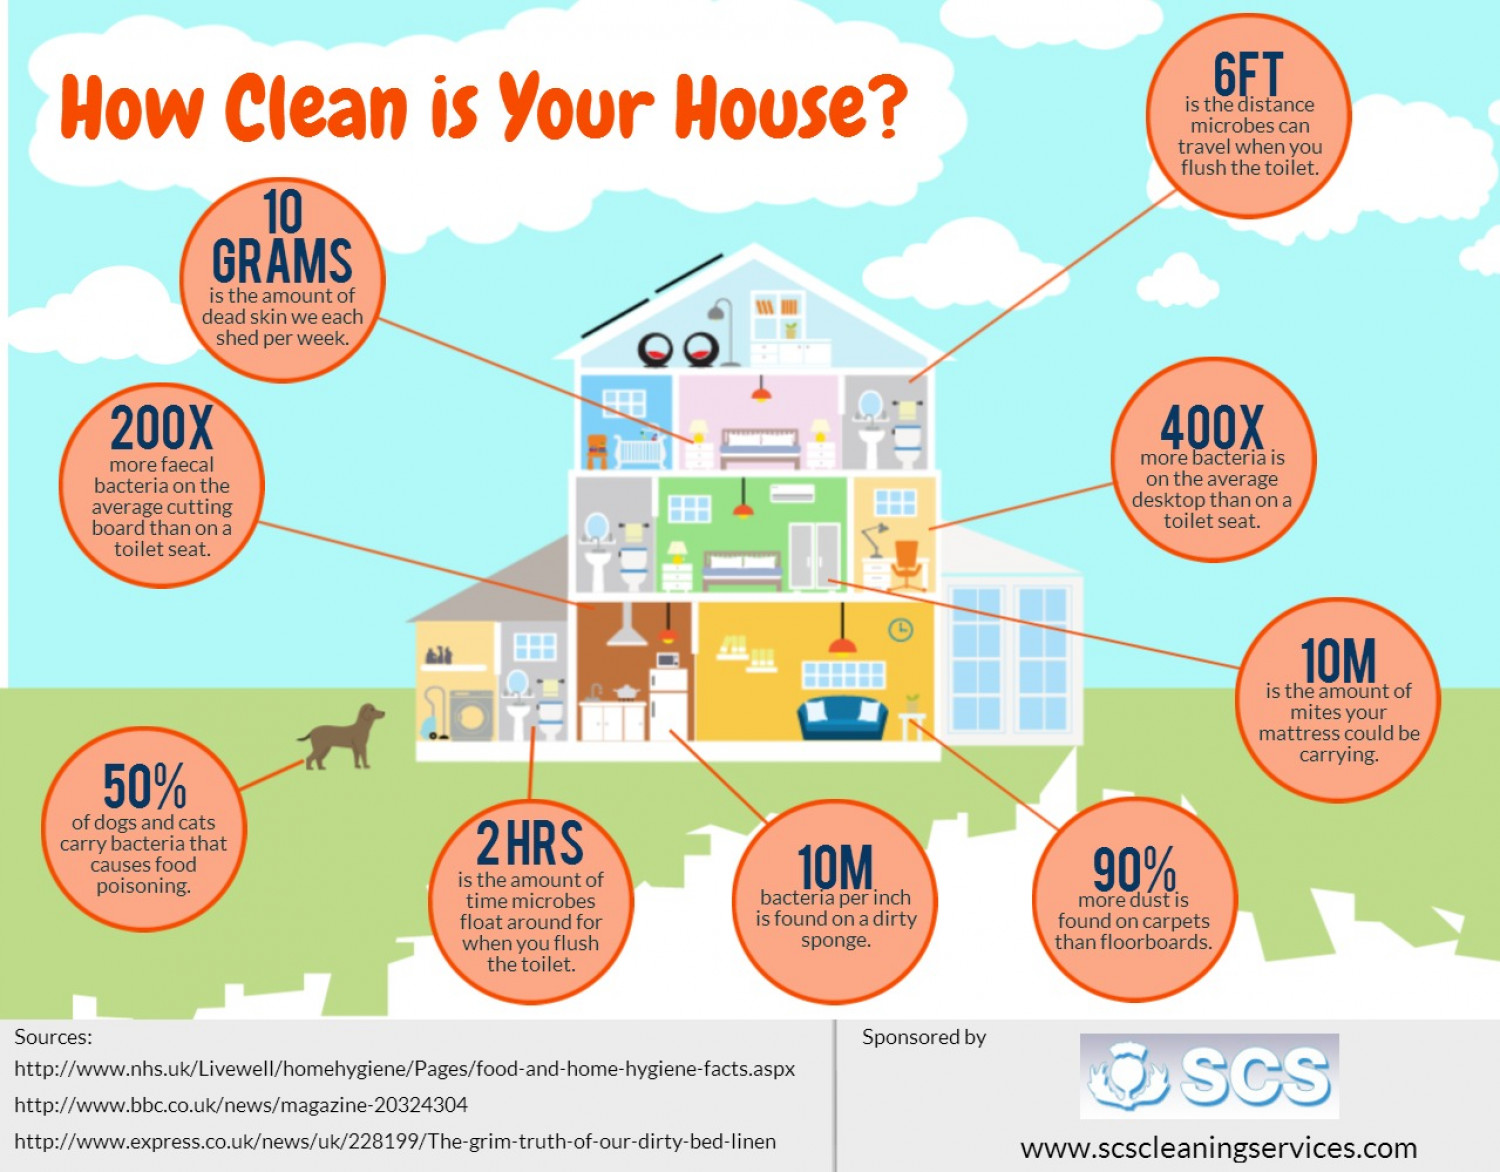 How To Clean Your House Fast how clean is your house infographic. homeec how to keep a clean